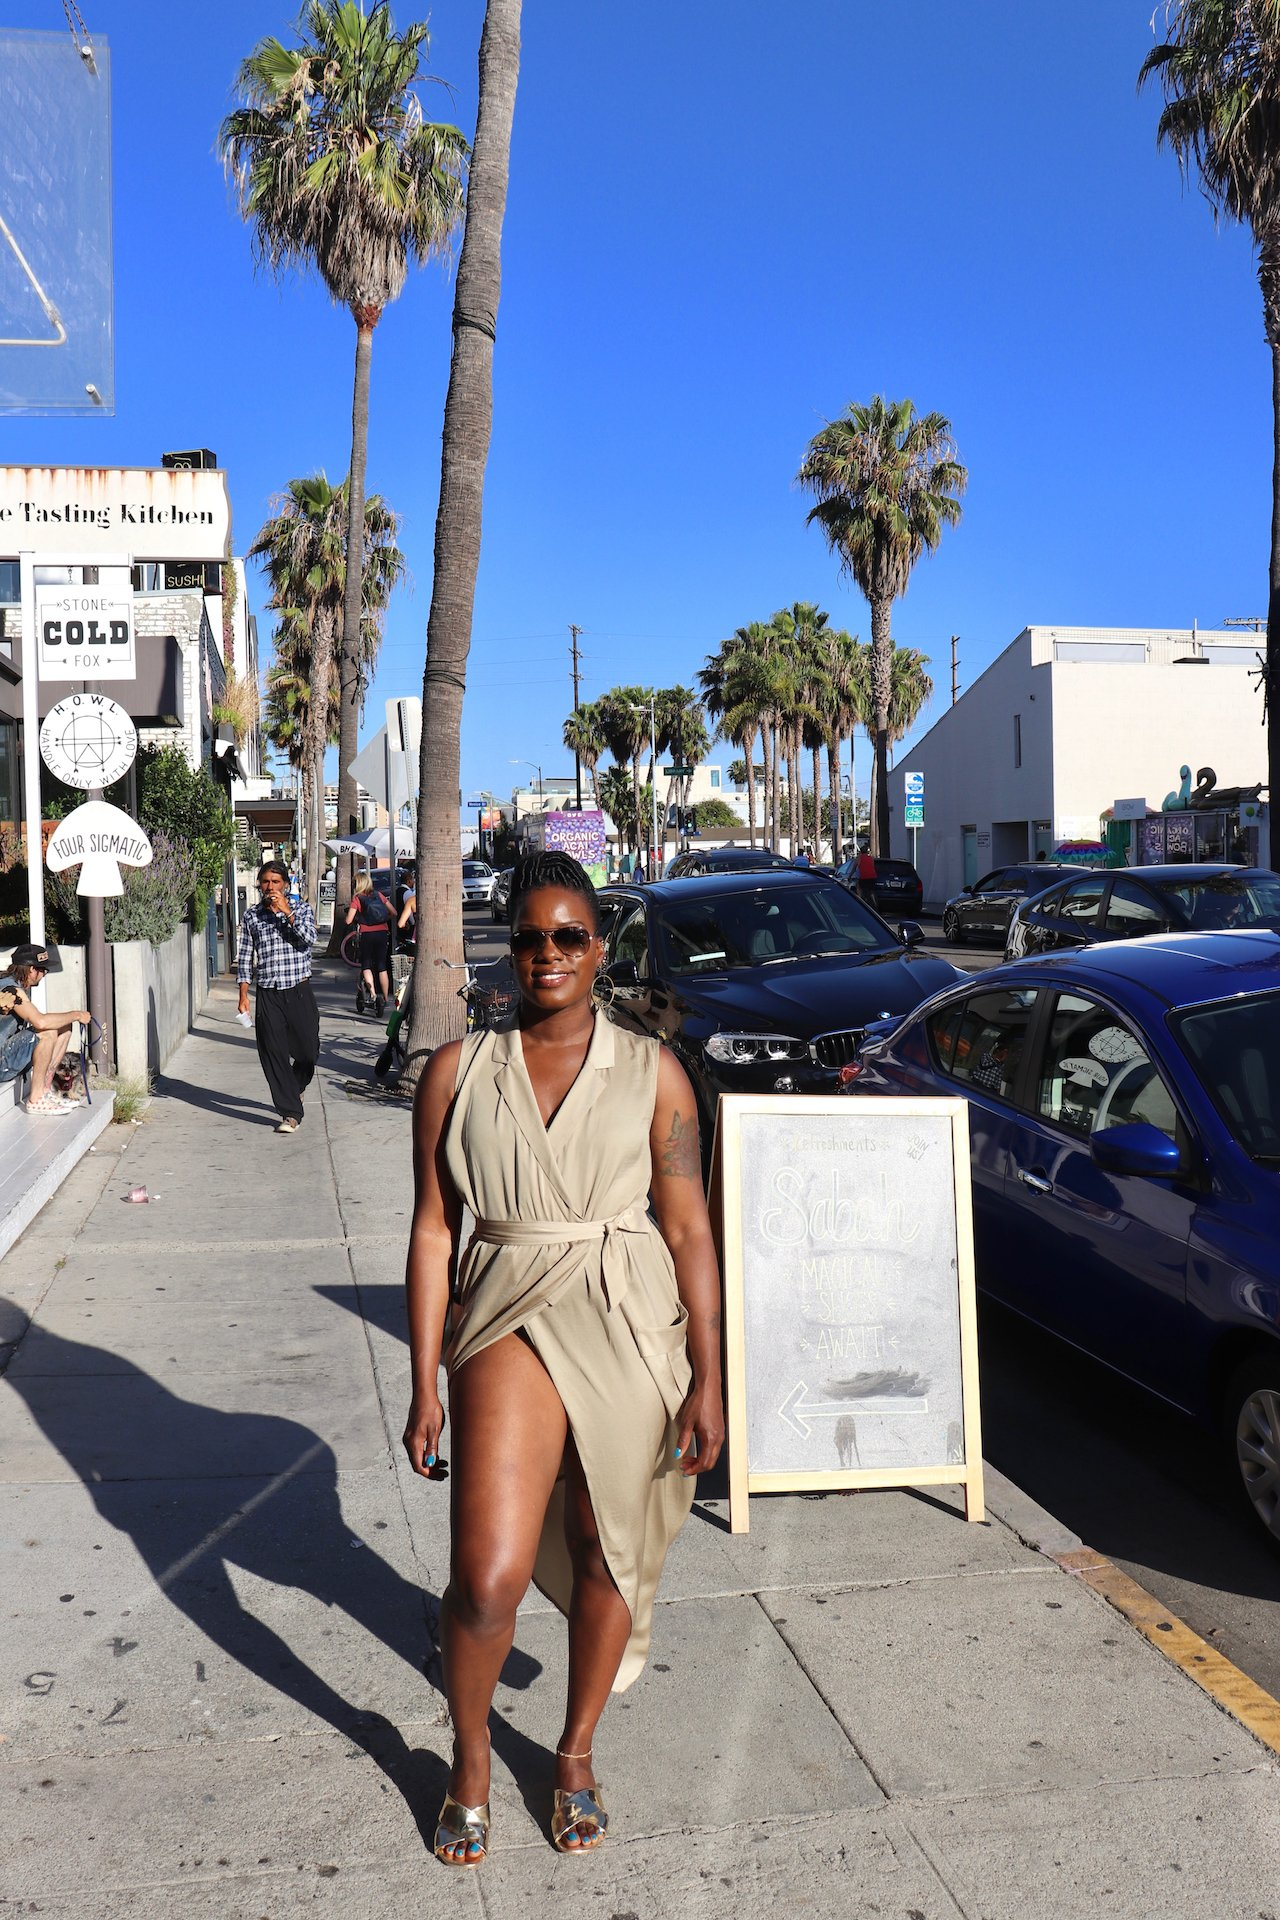 Day Trip To Venice Beach Abbot Kinney